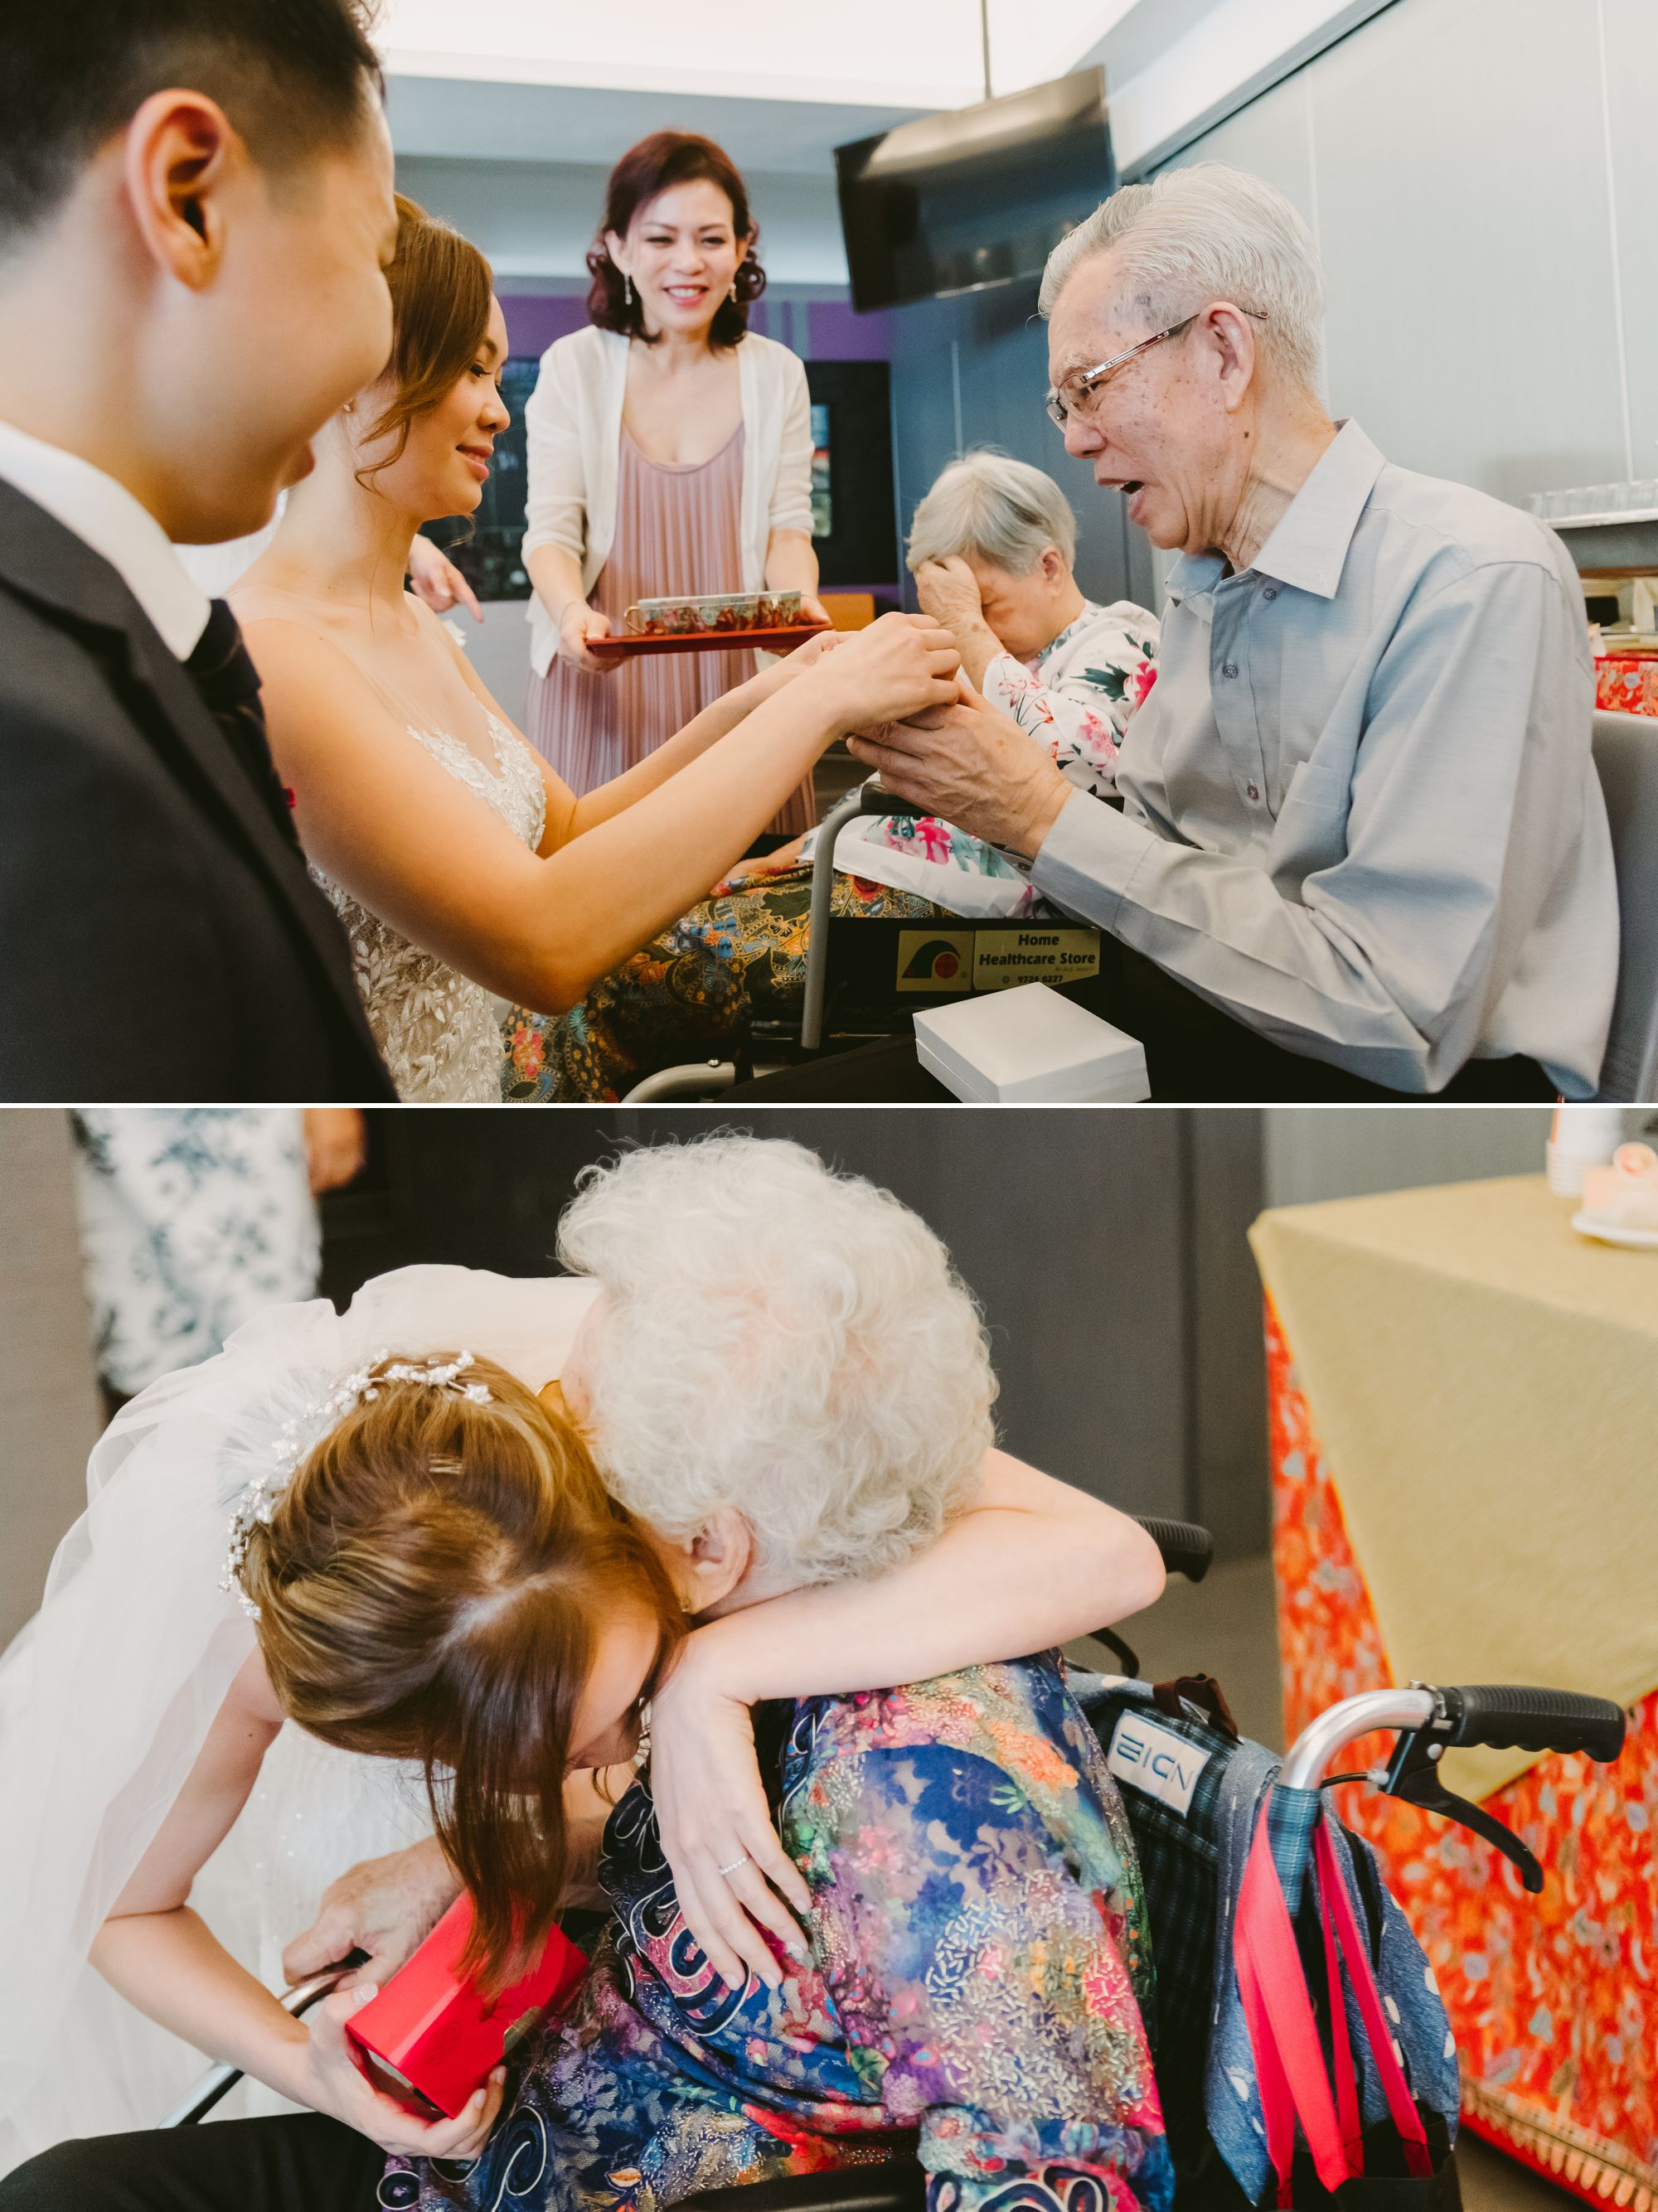 singapore_wedding_photographer_ 23.jpg